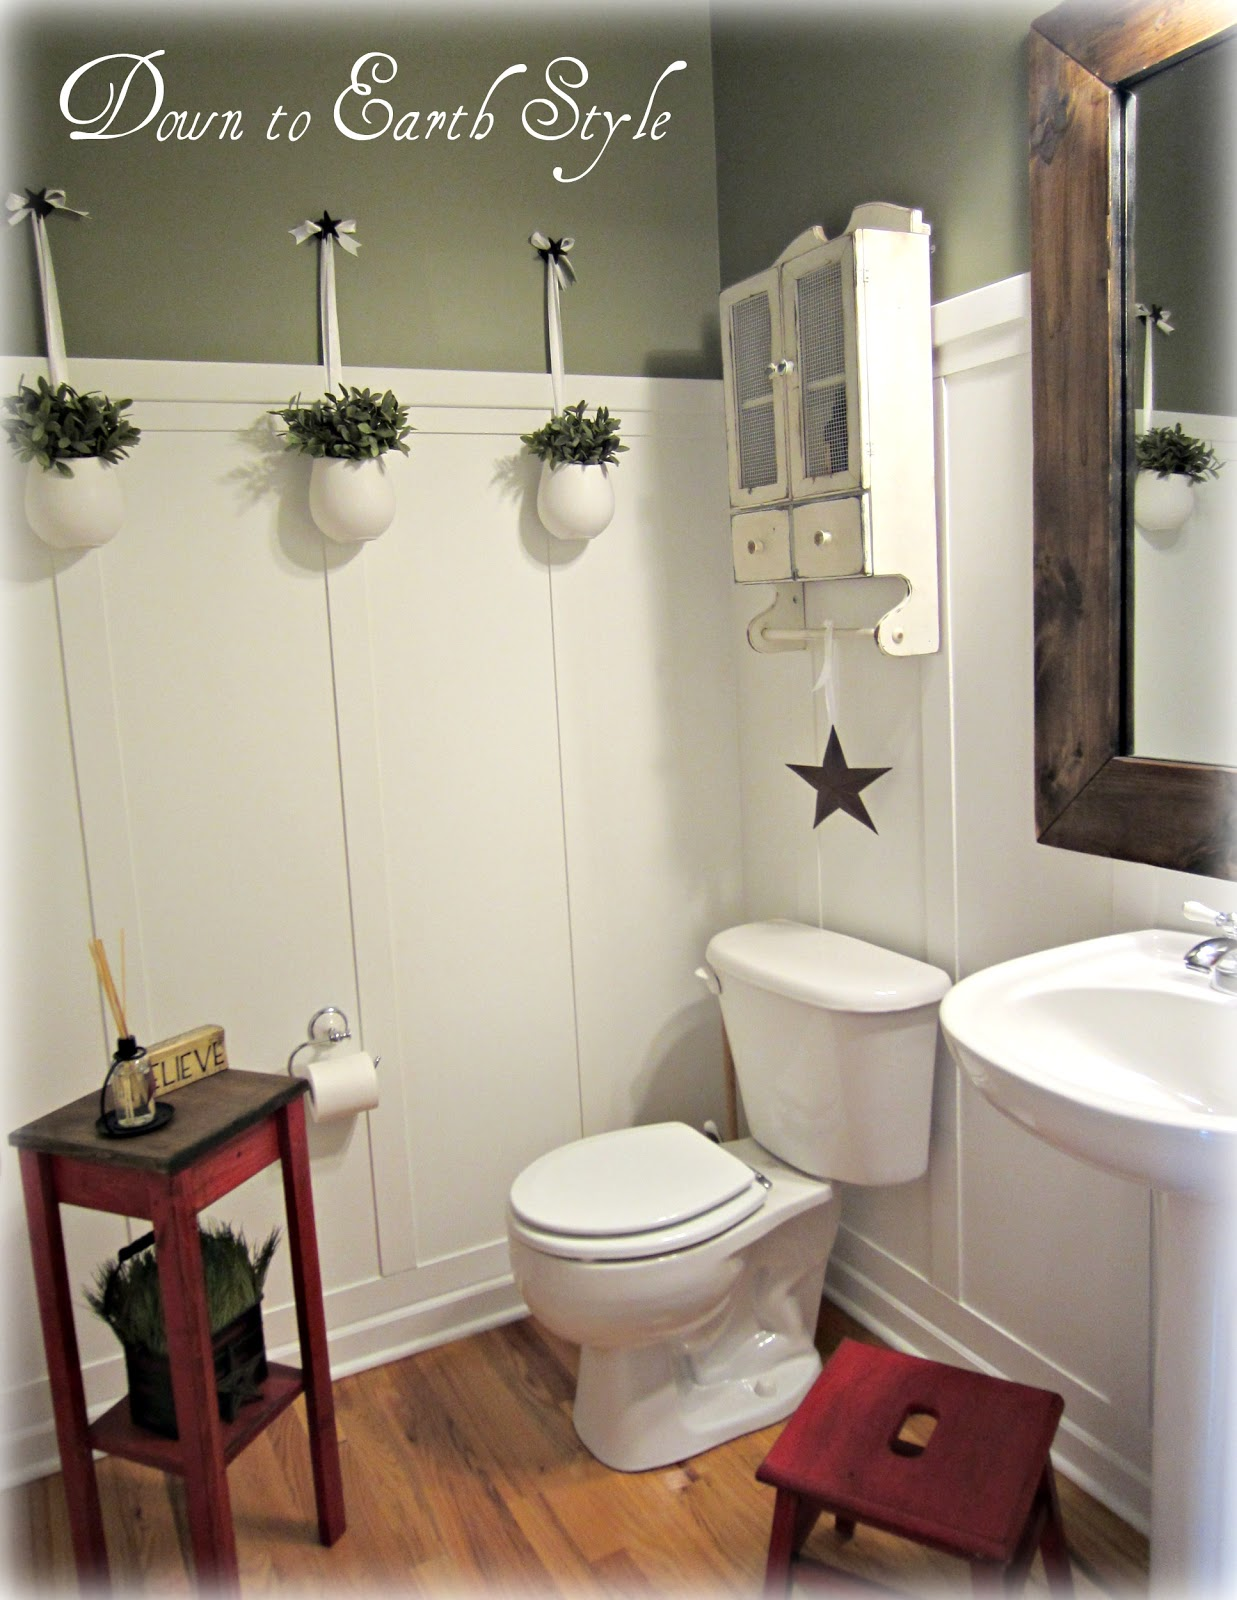 Benjamin Moore Green Bathroom Down To Earth Style Wall Colors